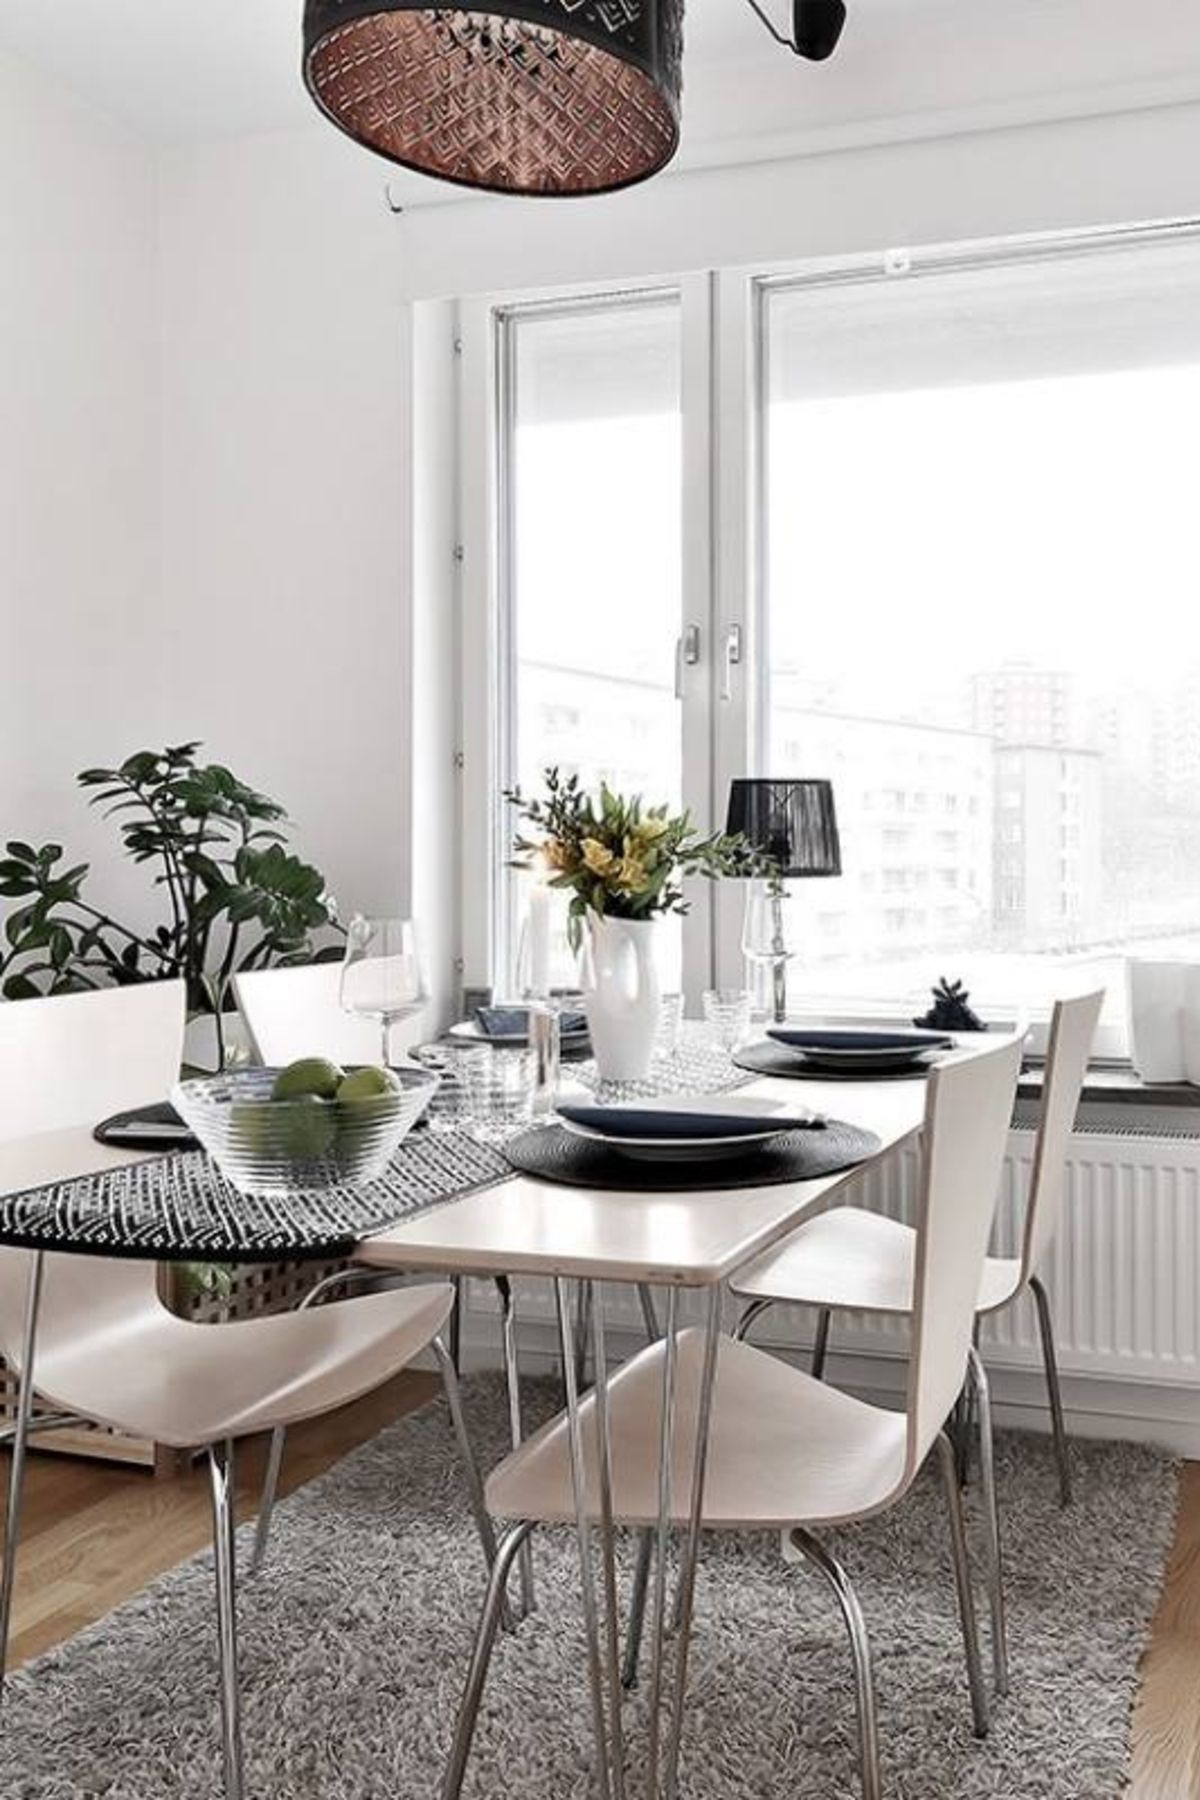 51 Scandinavian Stylish Dining Room Decor Ideas Dining Room Design Stylish Dining Room Dining Room Contemporary